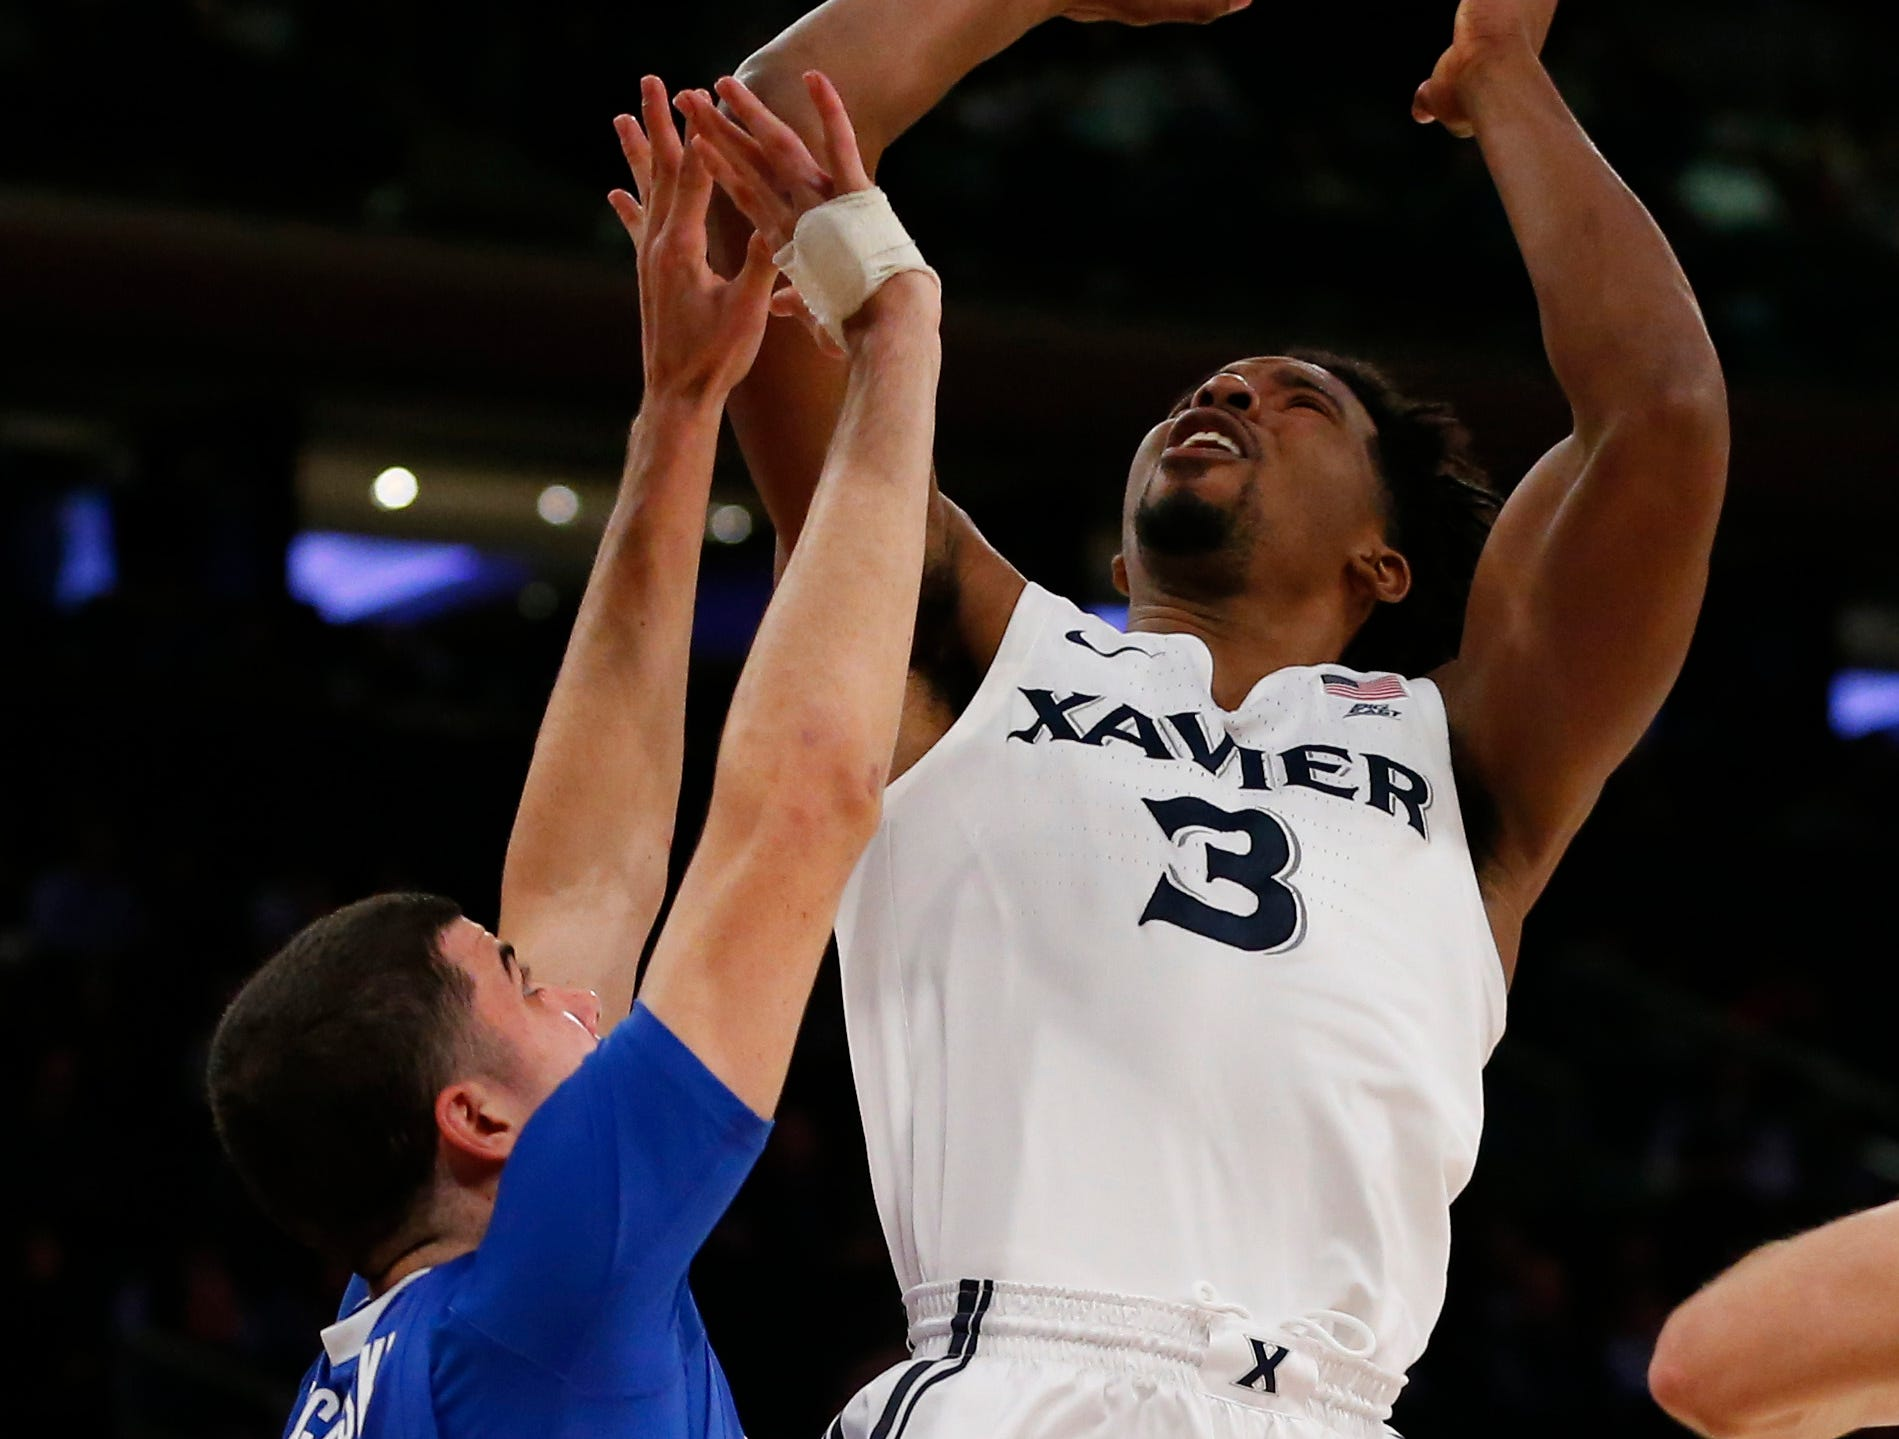 Xavier Musketeers guard Quentin Goodin (3) shoots over Creighton Bluejays guard Marcus Zegarowski (11) during the second half of a quarterfinal game of the Big East conference tournament at Madison Square Garden. Mandatory Credit: Noah K. Murray-USA TODAY Sports